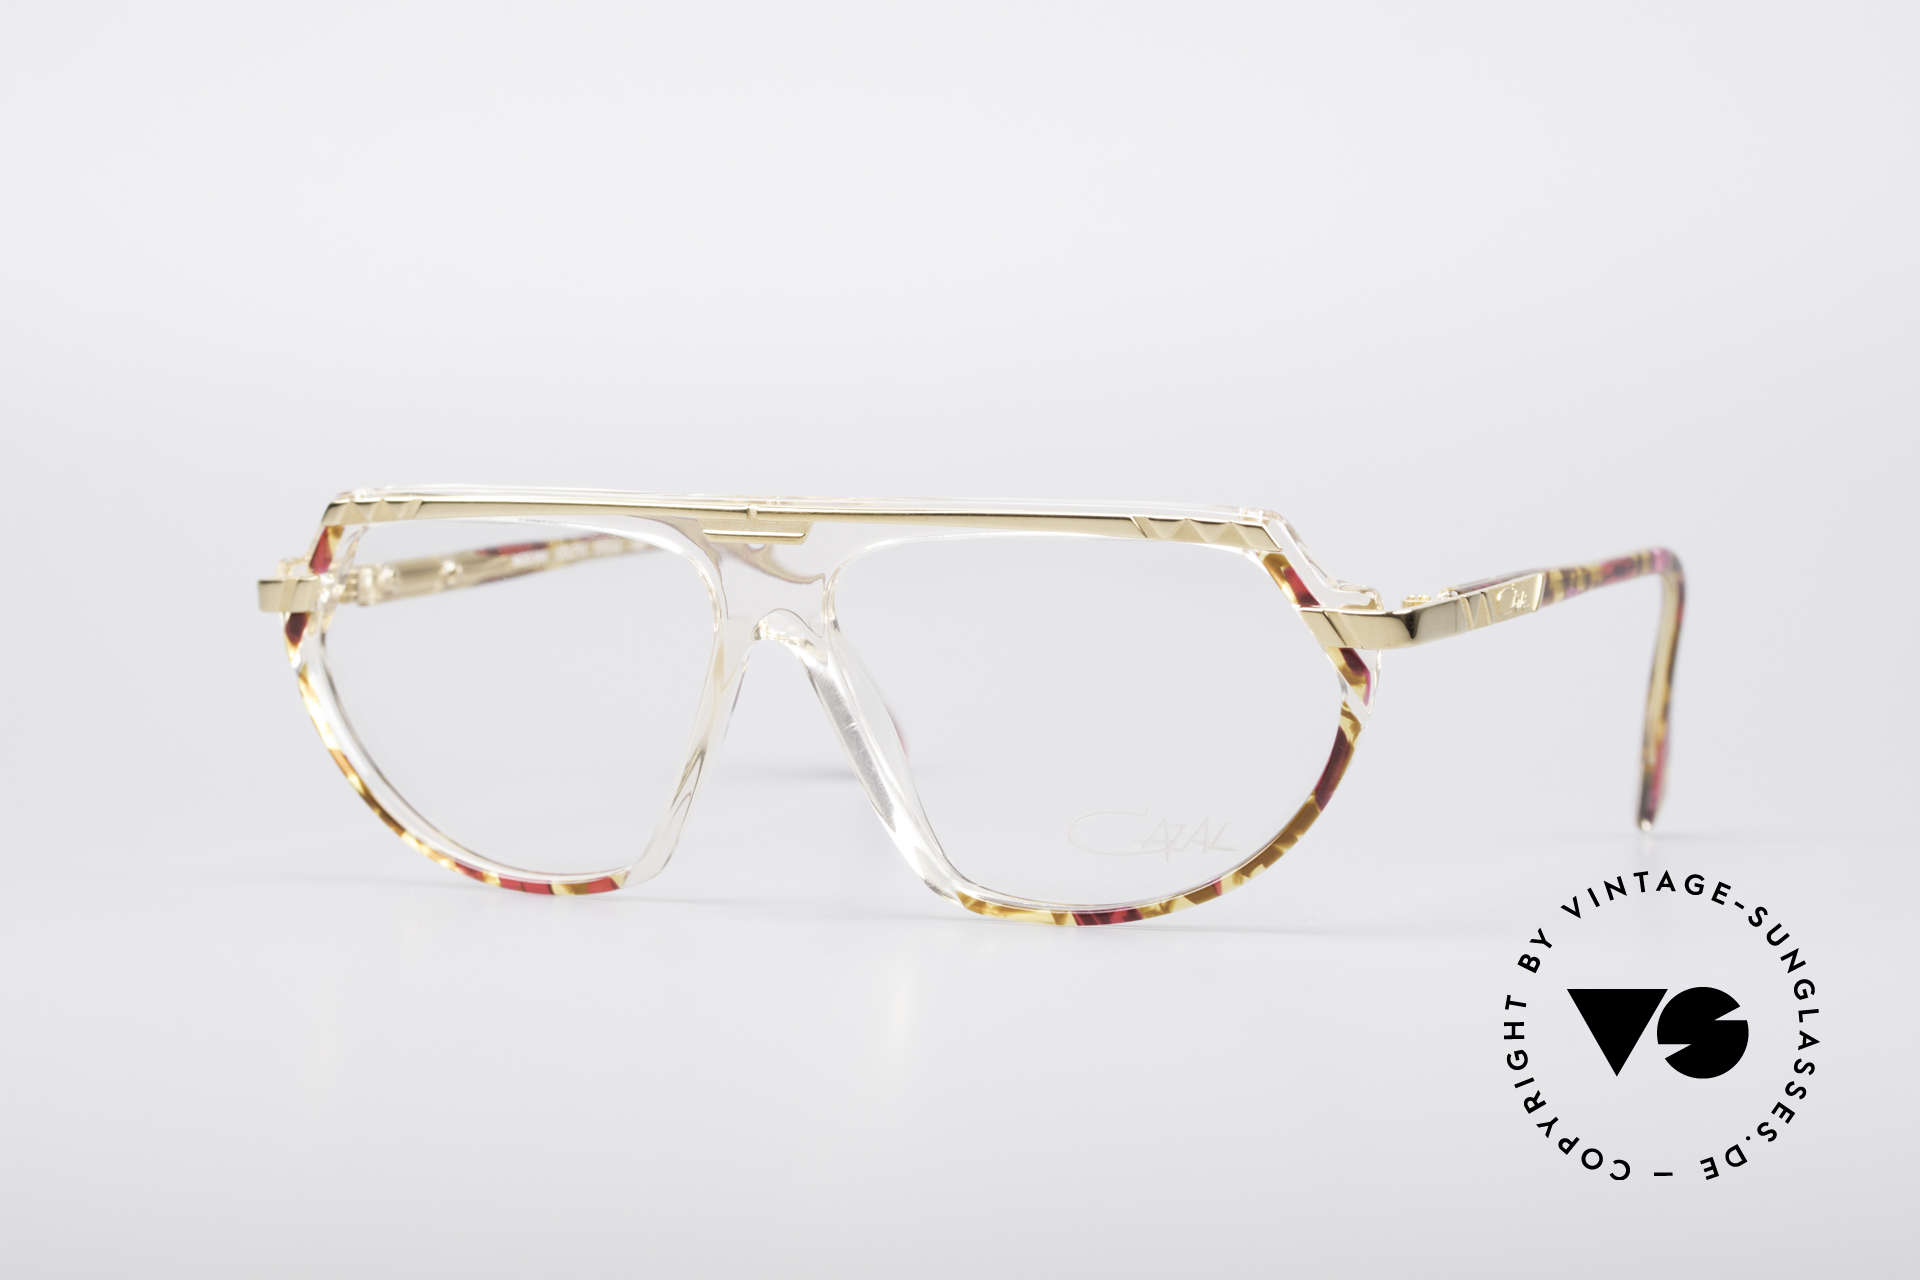 Cazal 344 Old School Crystal Glasses, vintage CAZAL designer eyeglasses from 1989/1990, Made for Women